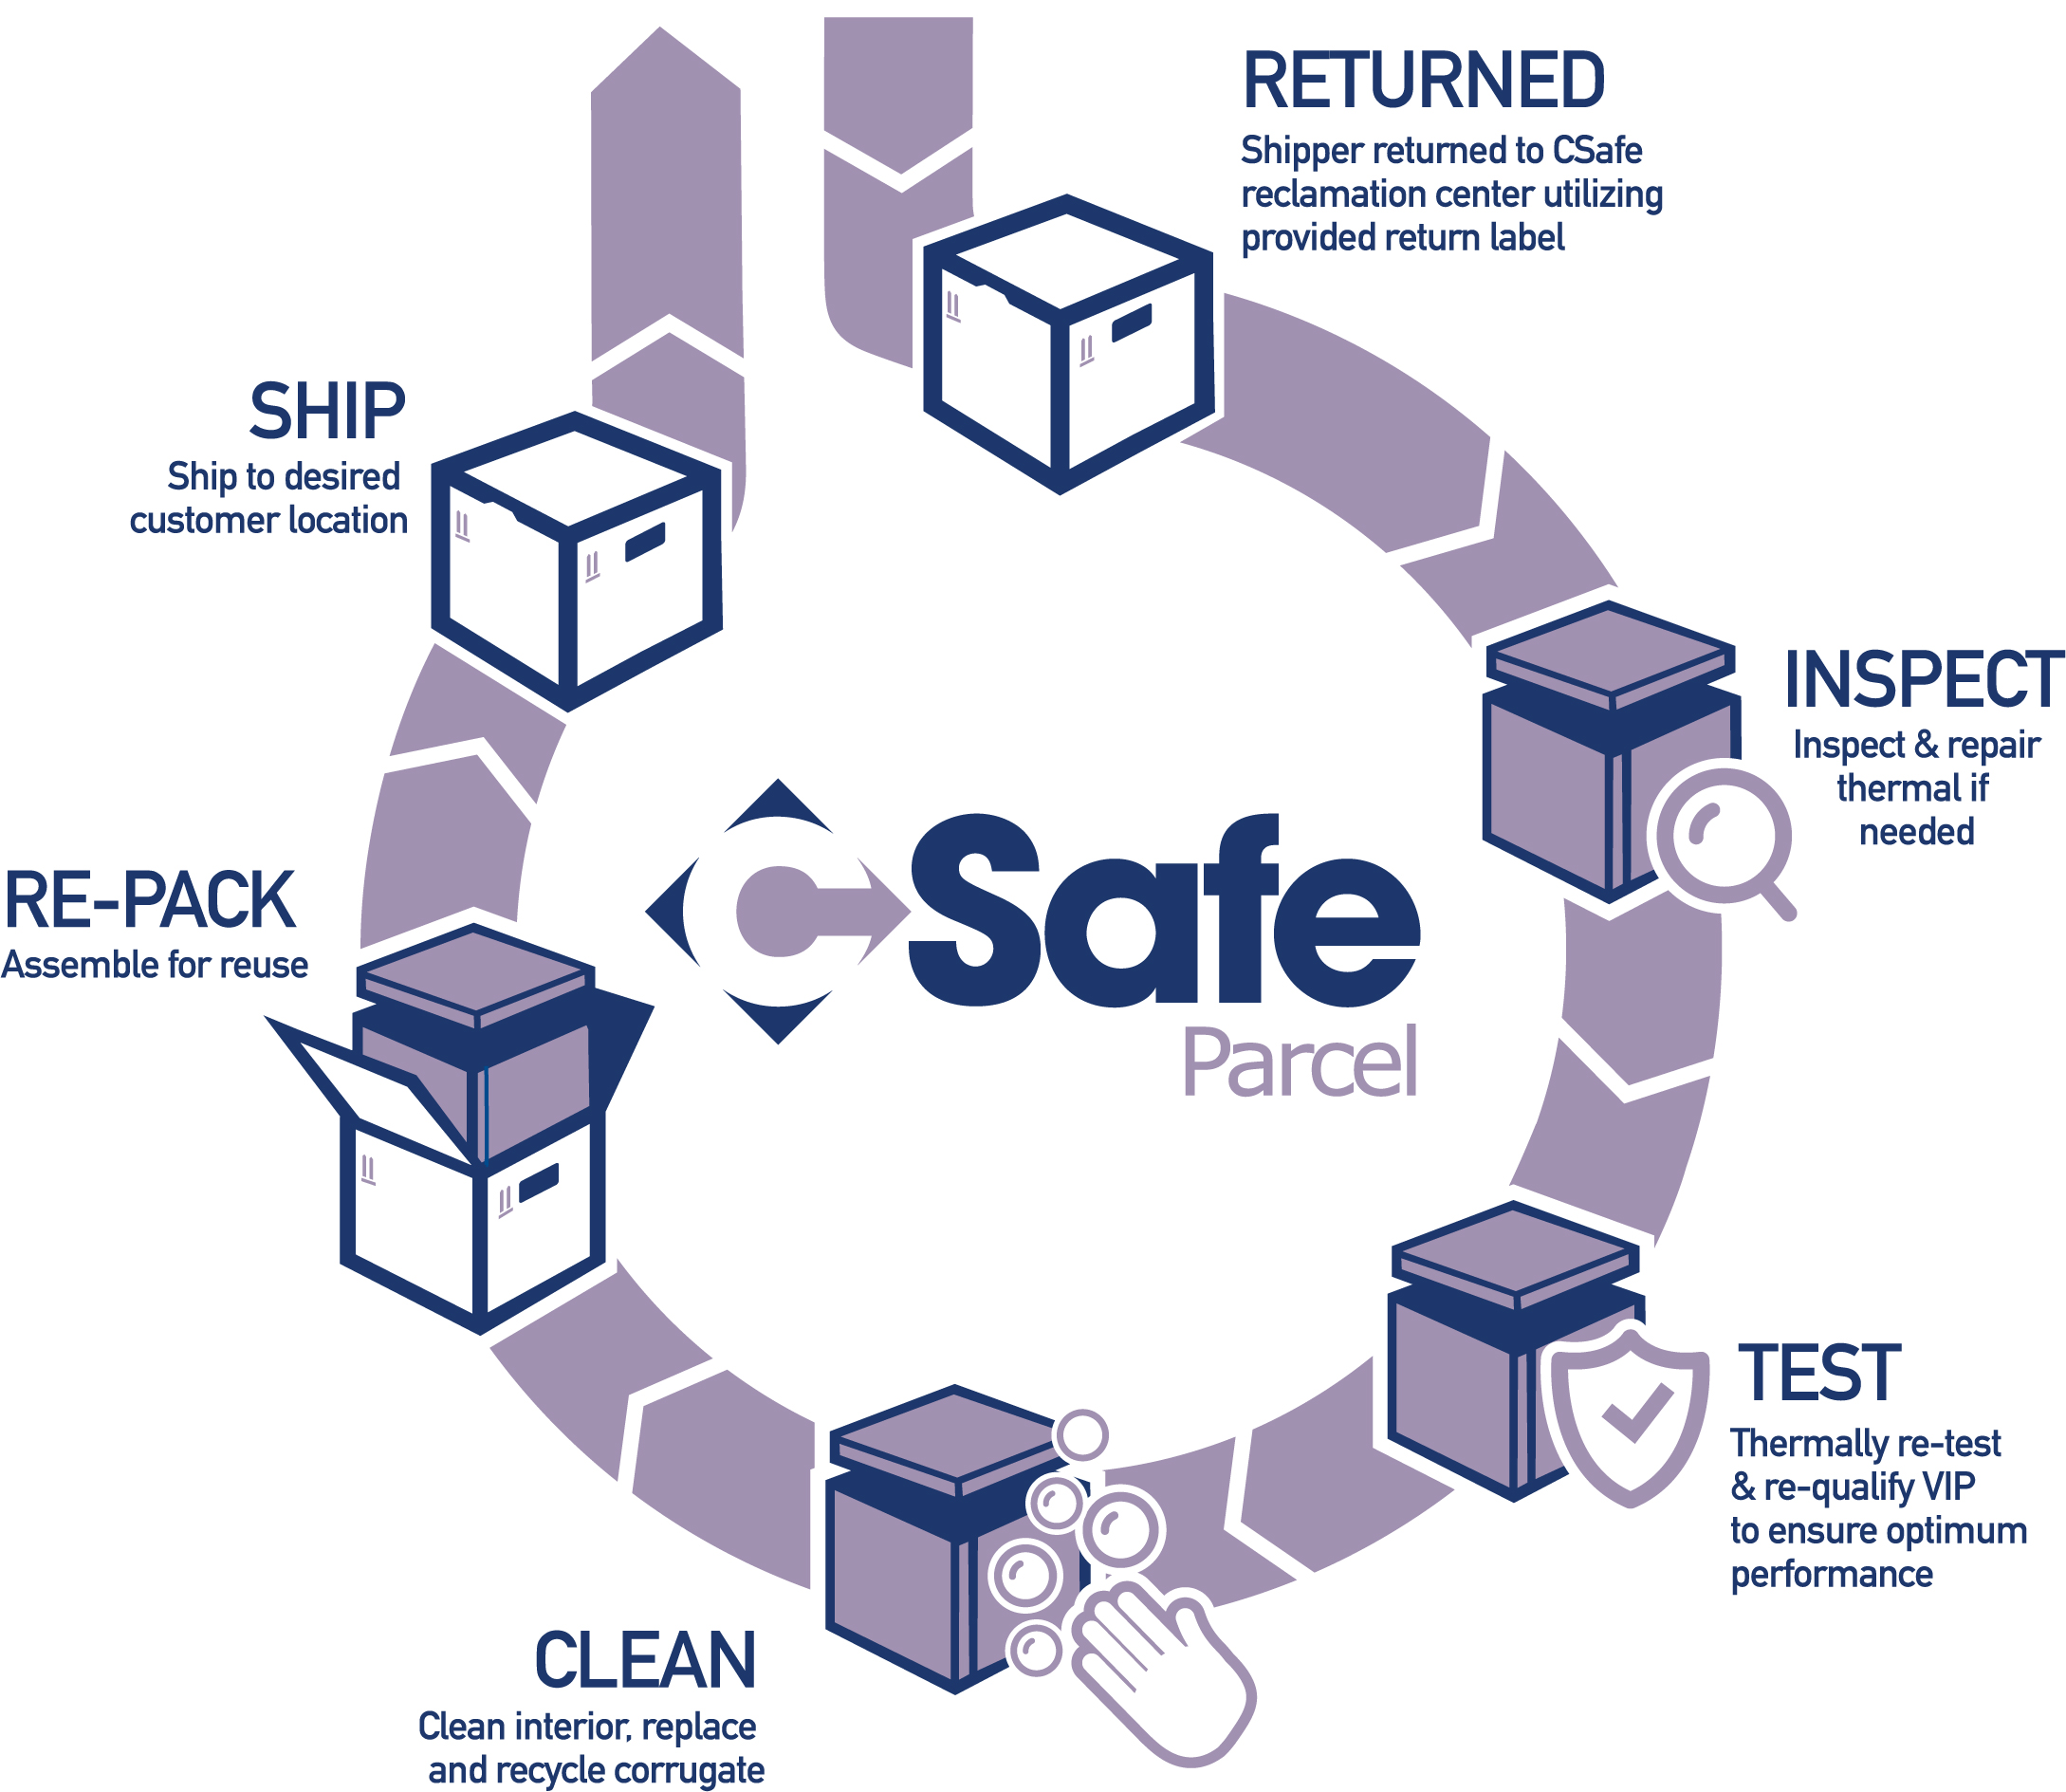 CSafe Parcel reuse process